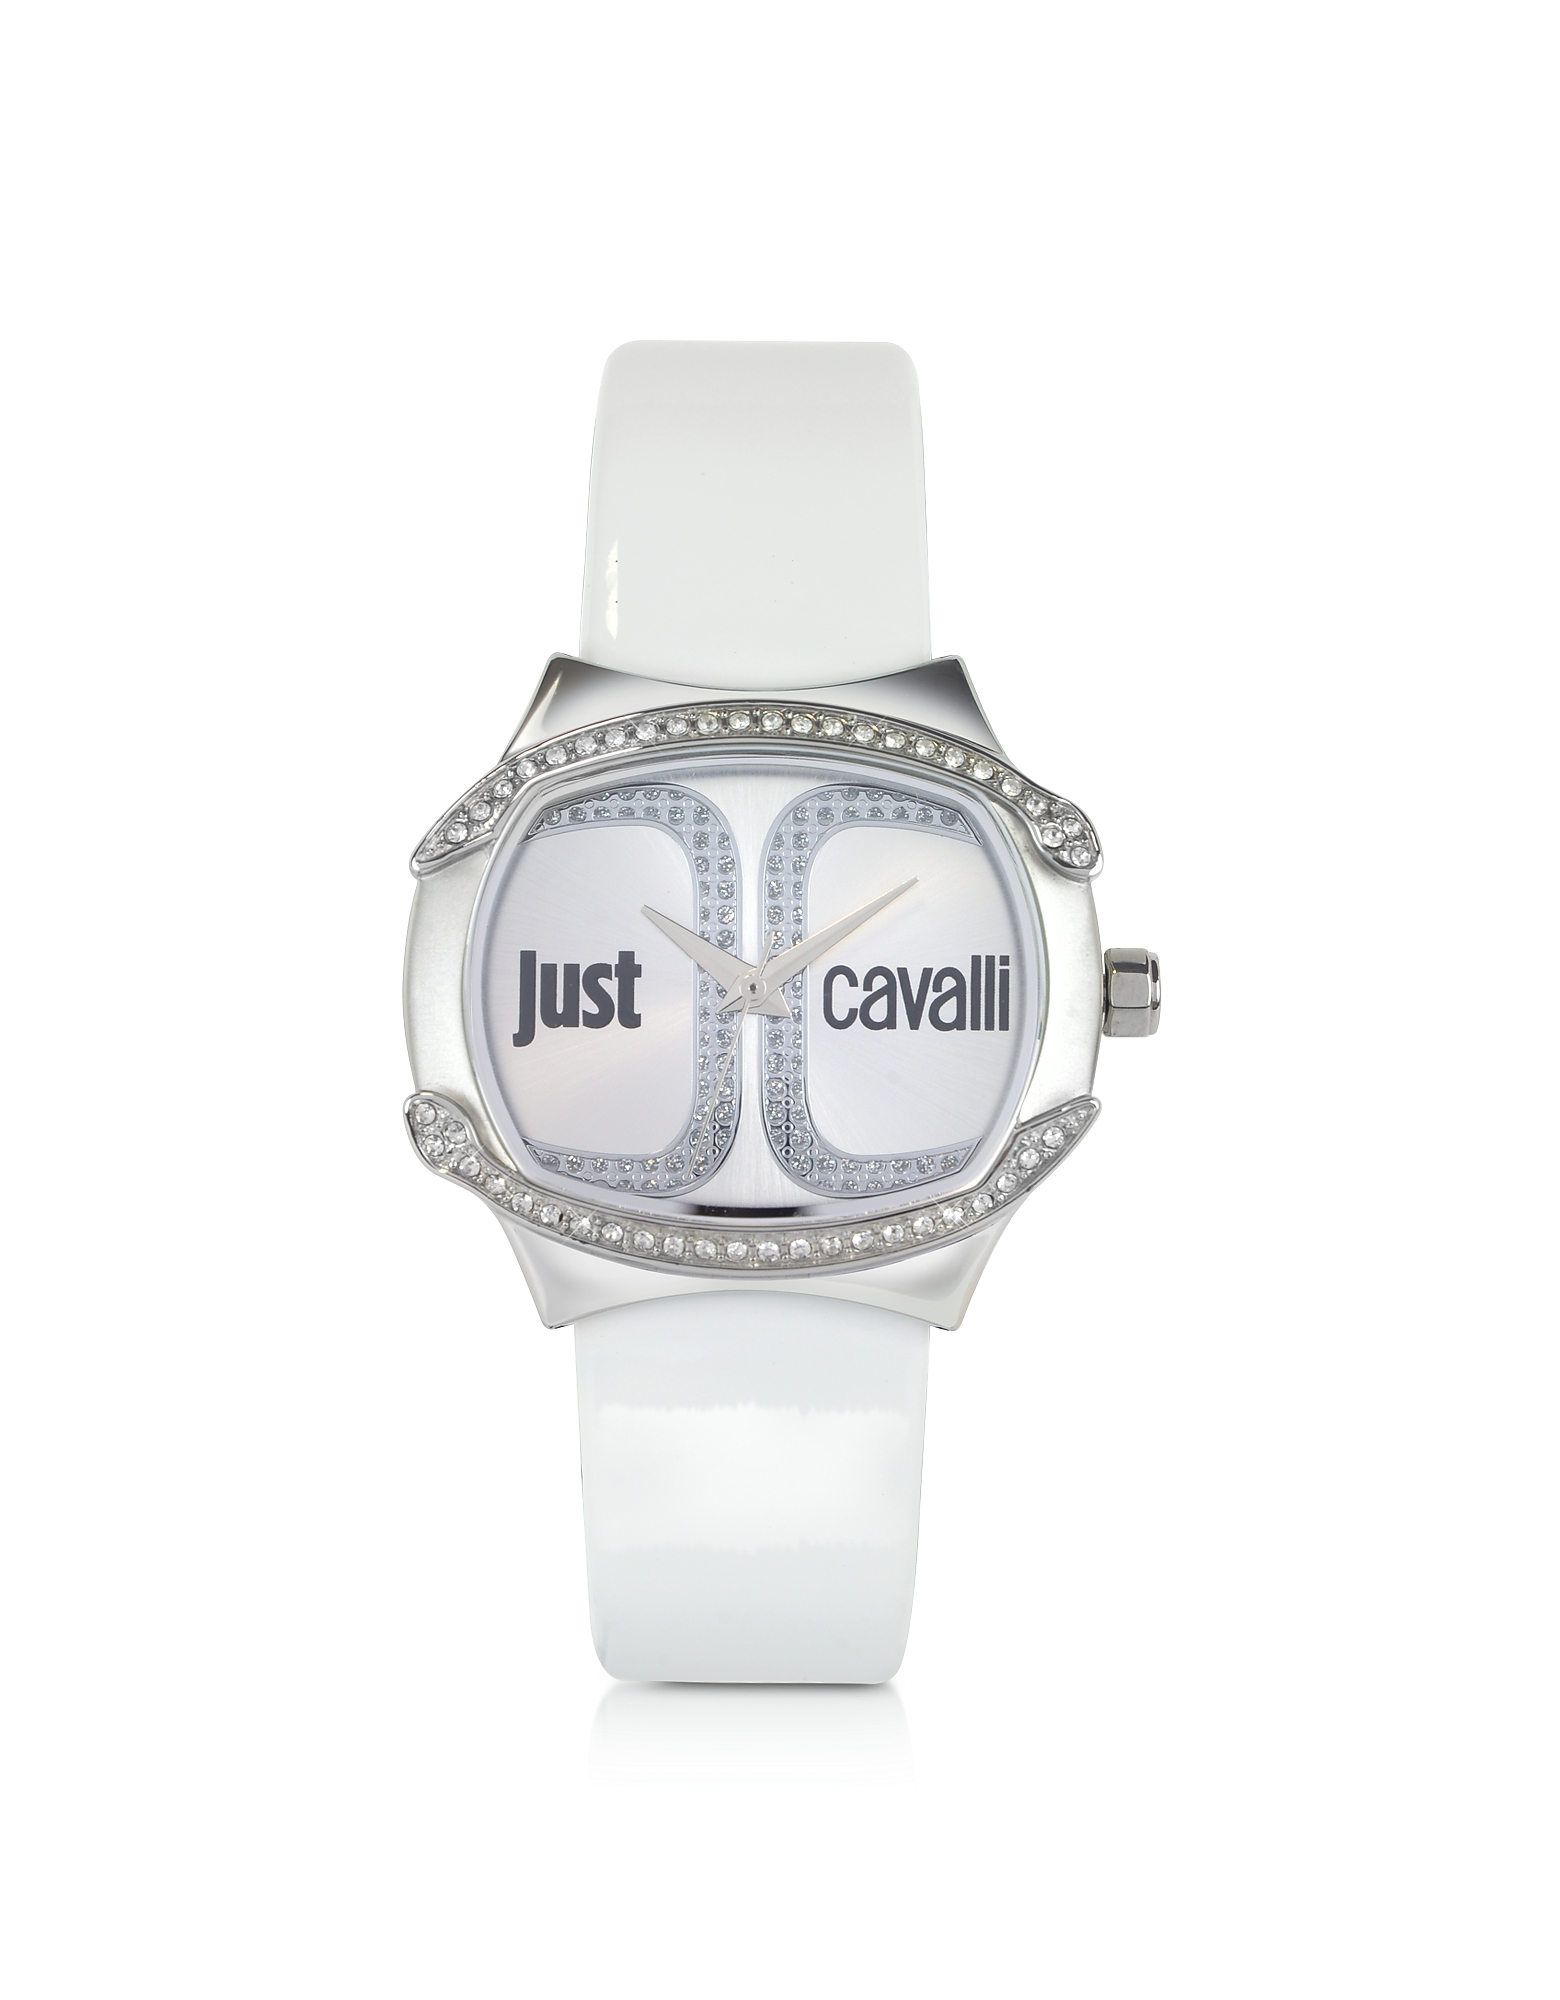 Just Cavalli Women's Watches, Born Collection Oblong Logo Watch